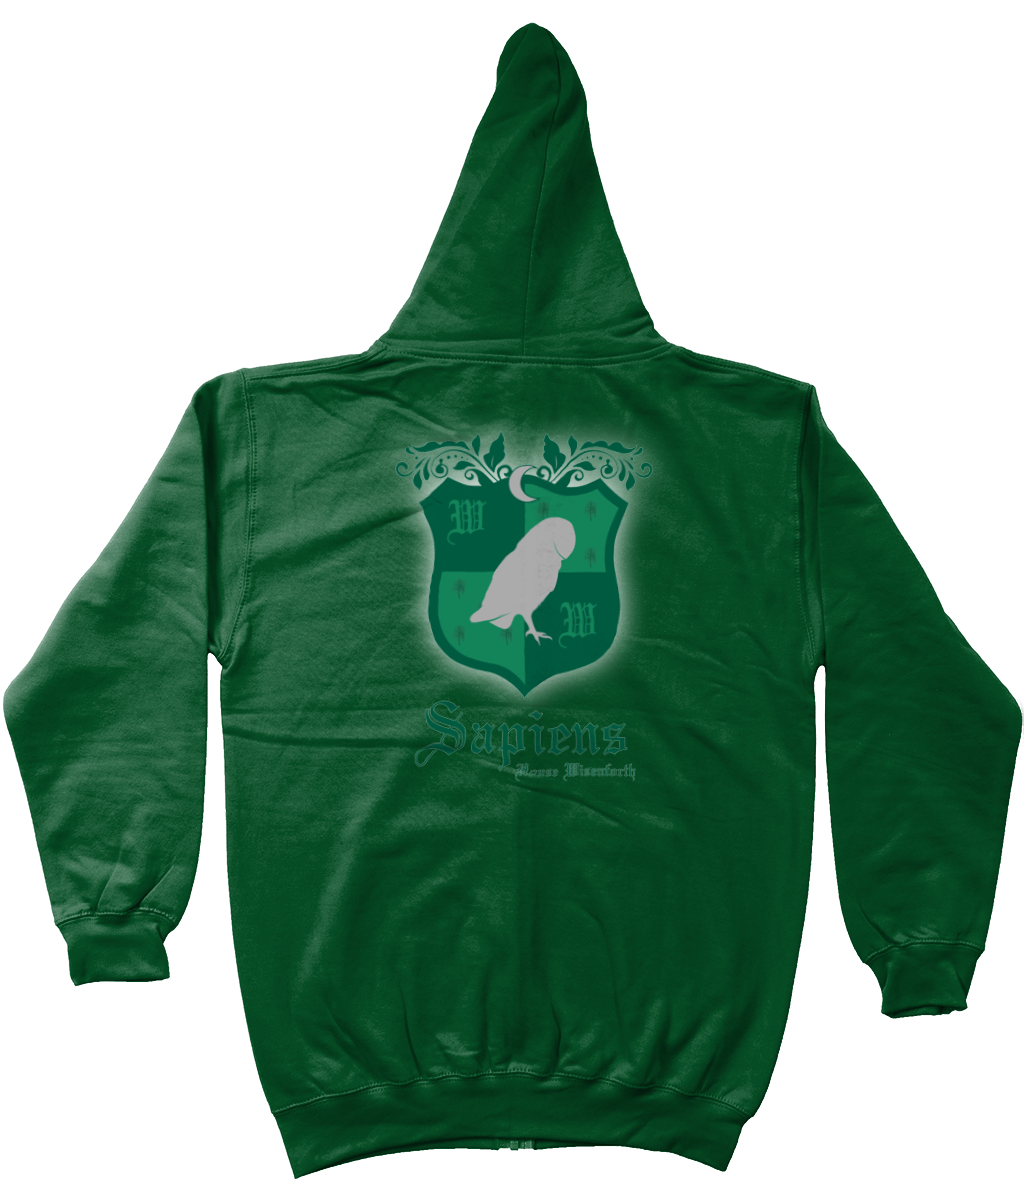 Unisex Wisenforth Crest Zip-Up Hoodie